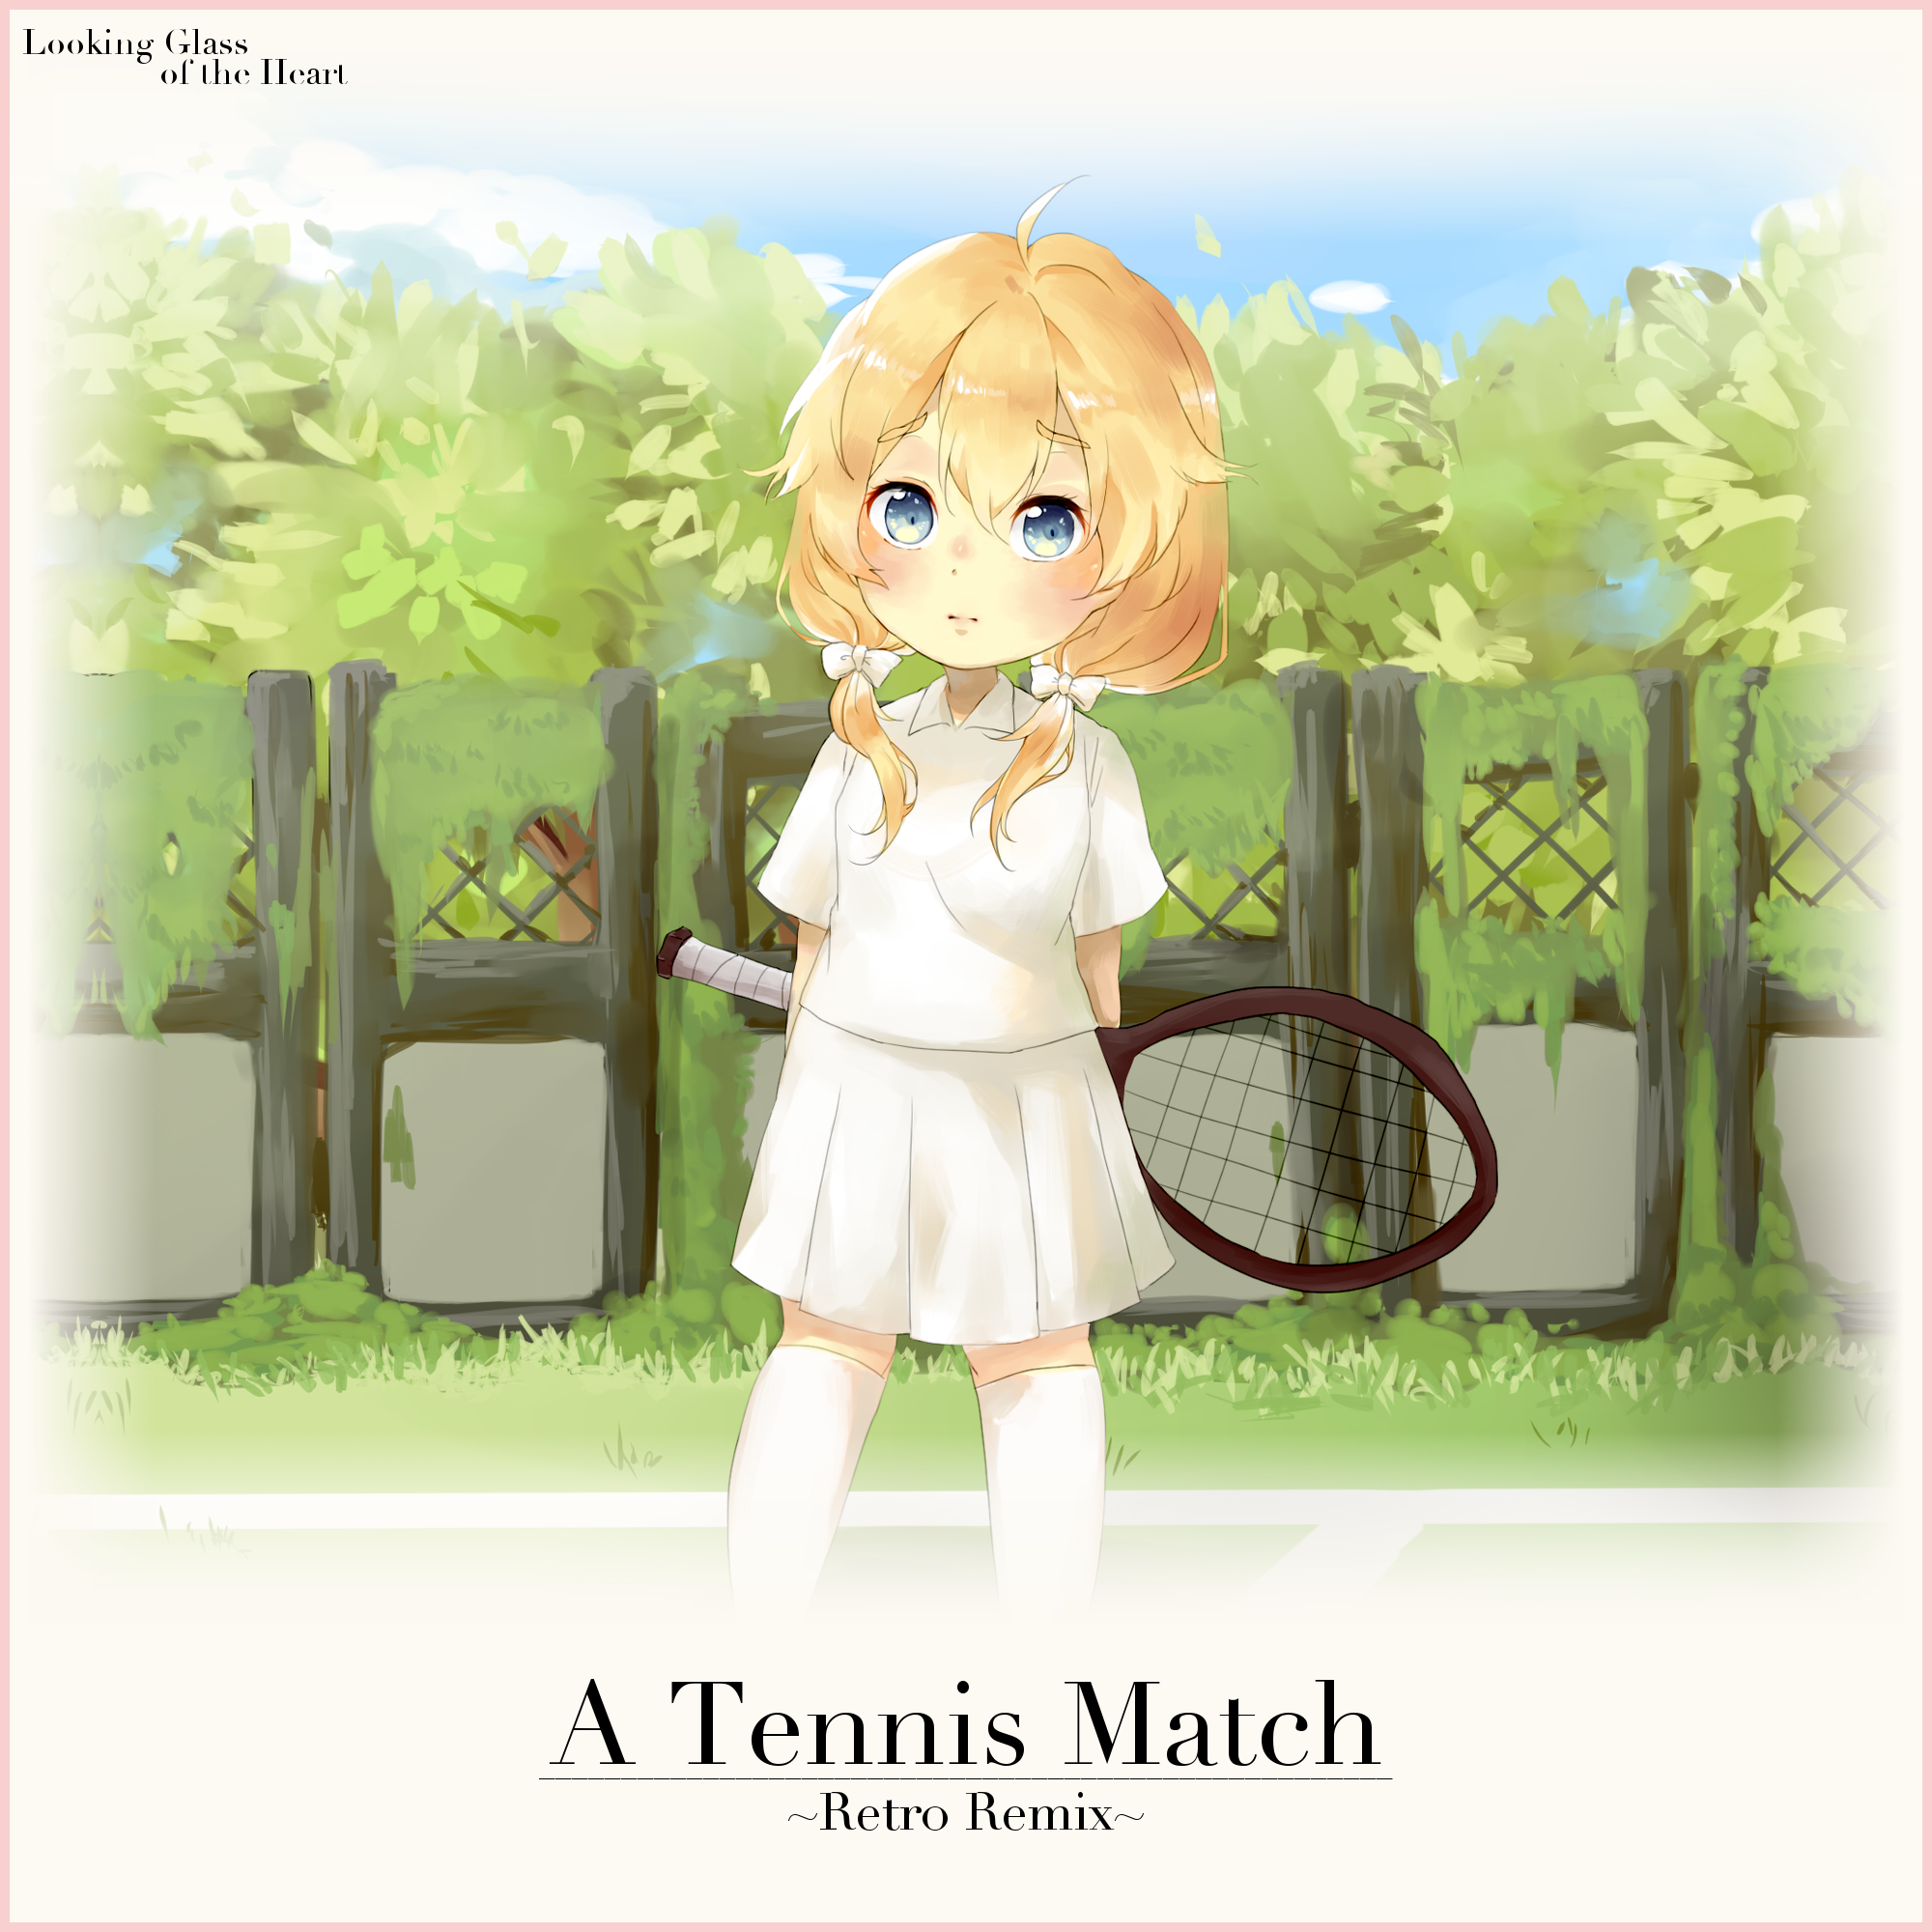 A Tennis Match (Album Art).png